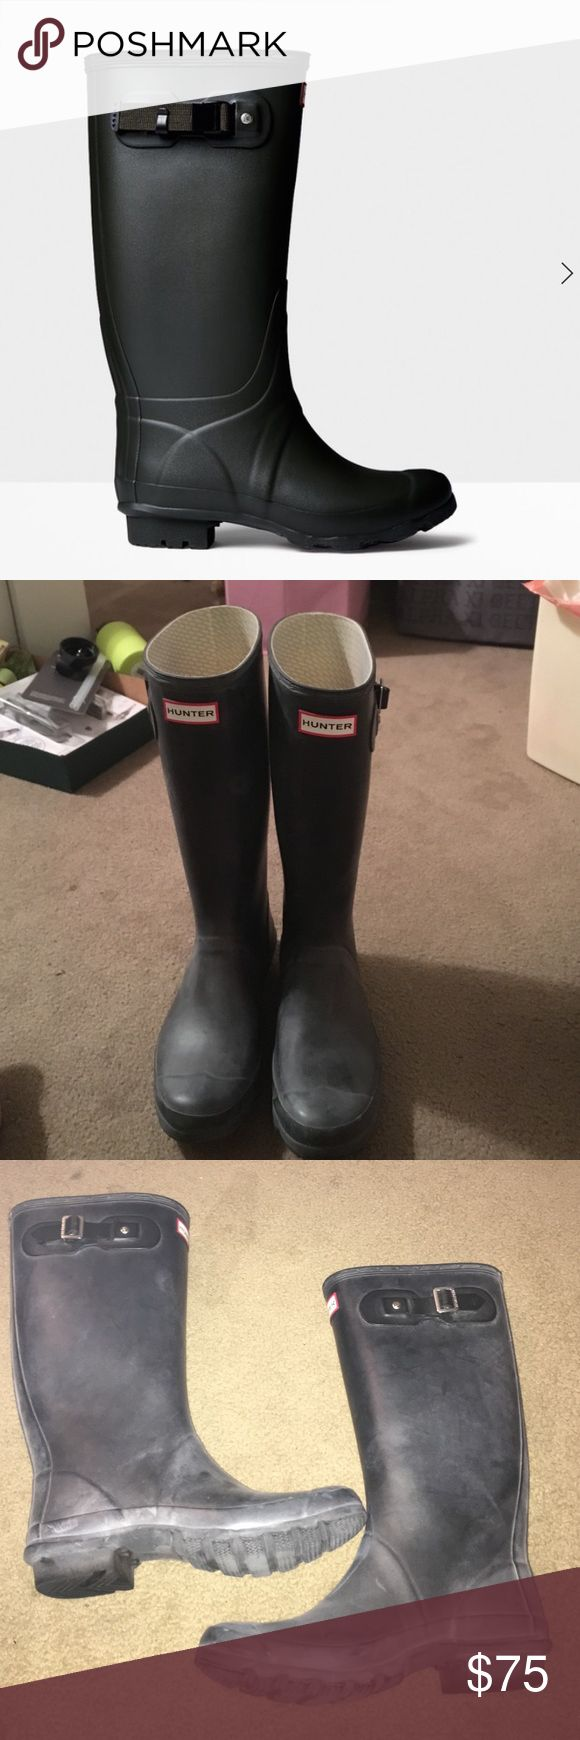 Hunter Huntress Rain Boots Hunter rain boots (wide calf) size 9. Slightly worn. They do have the white chalky look but that is normal and can be fixed with the hunter boot shiner. Hunter Boots Shoes Winter & Rain Boots